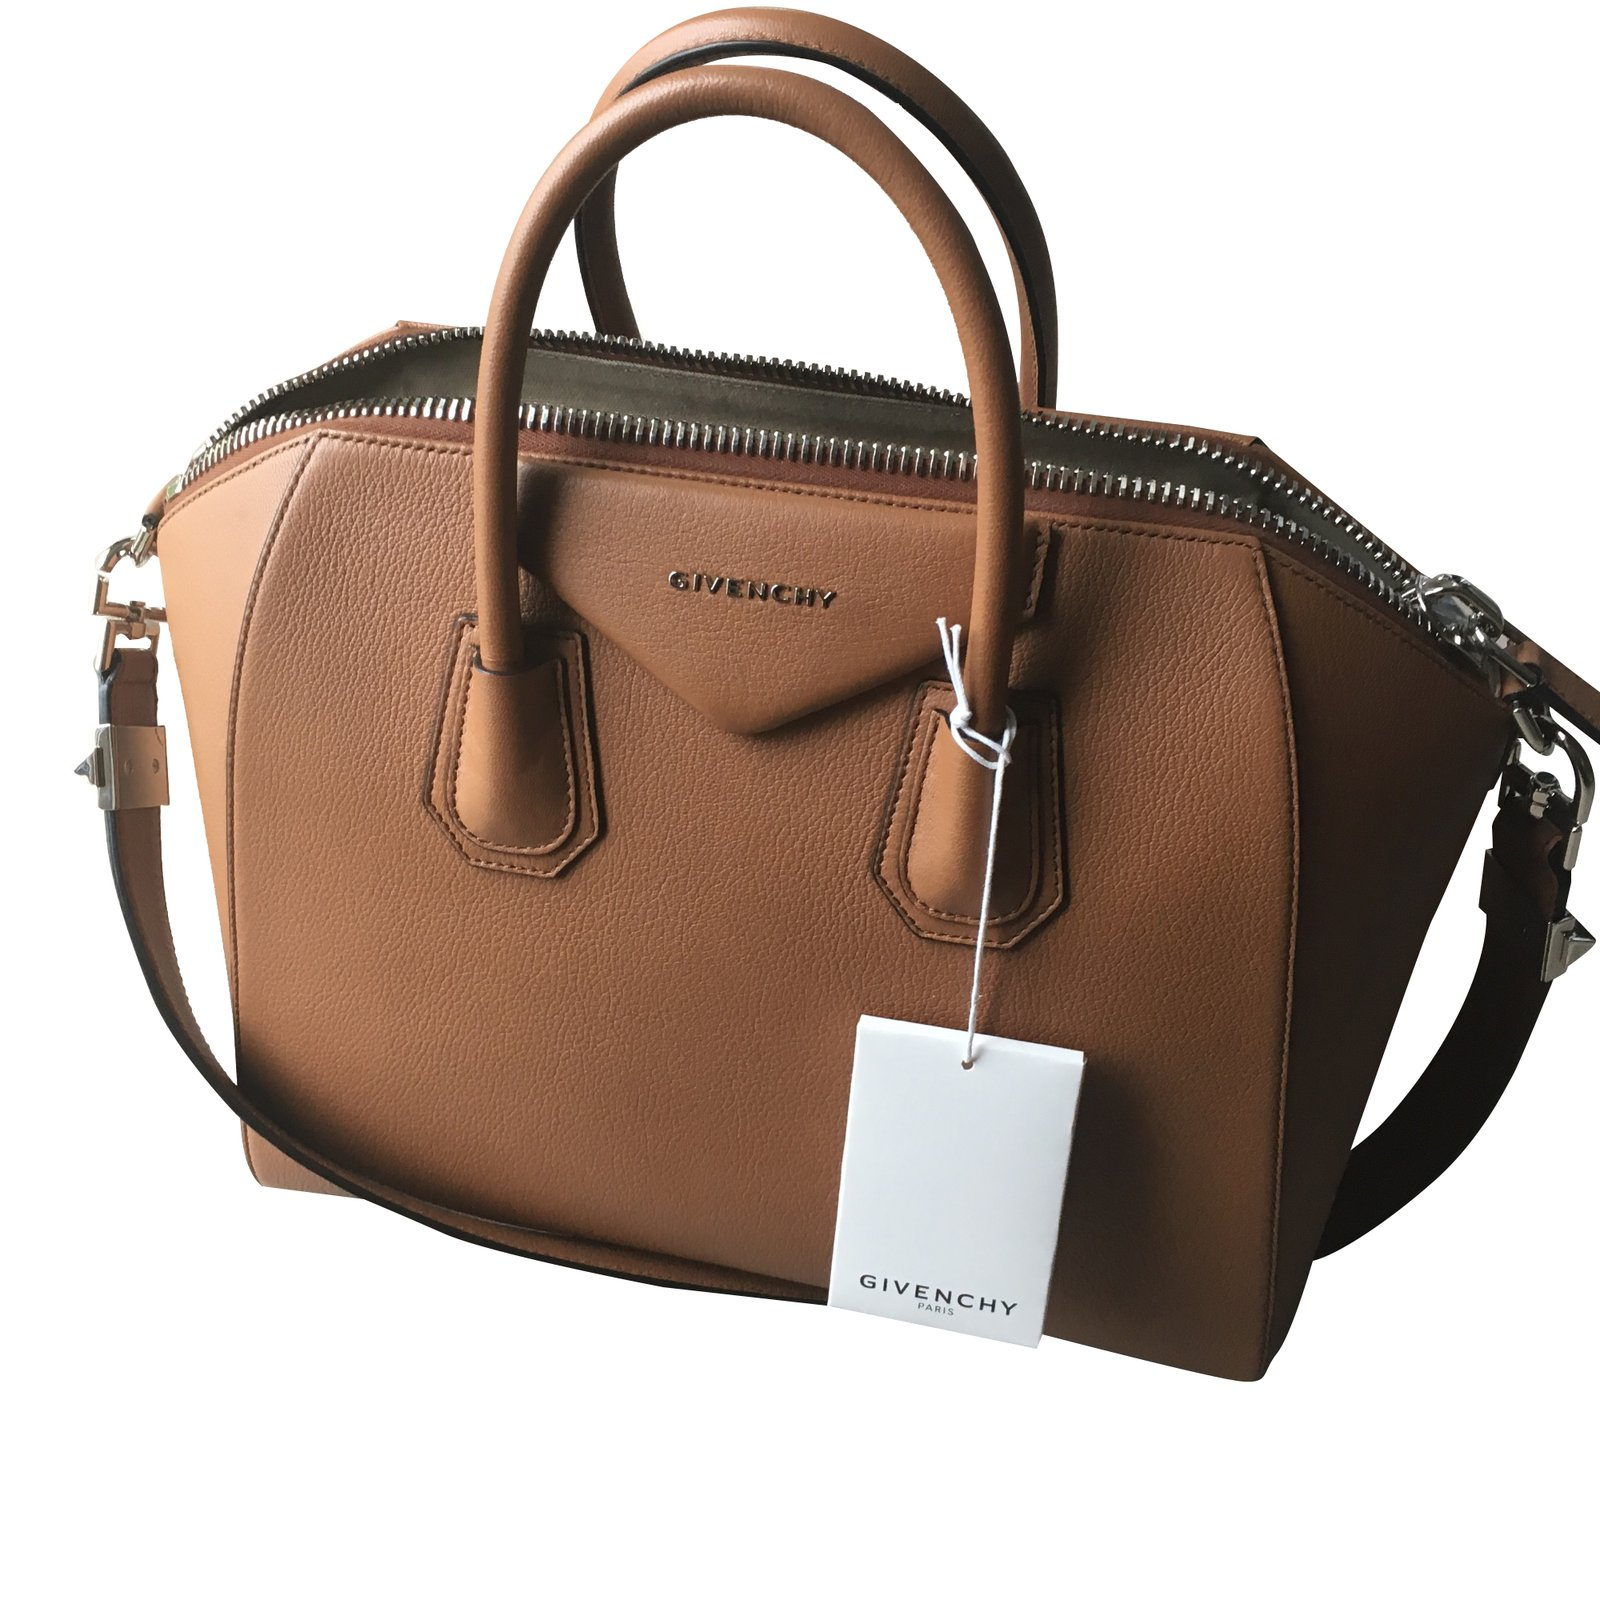 44e34a8bda6 Givenchy Antigona Handbags Leather Caramel ref.30941 - Joli Closet